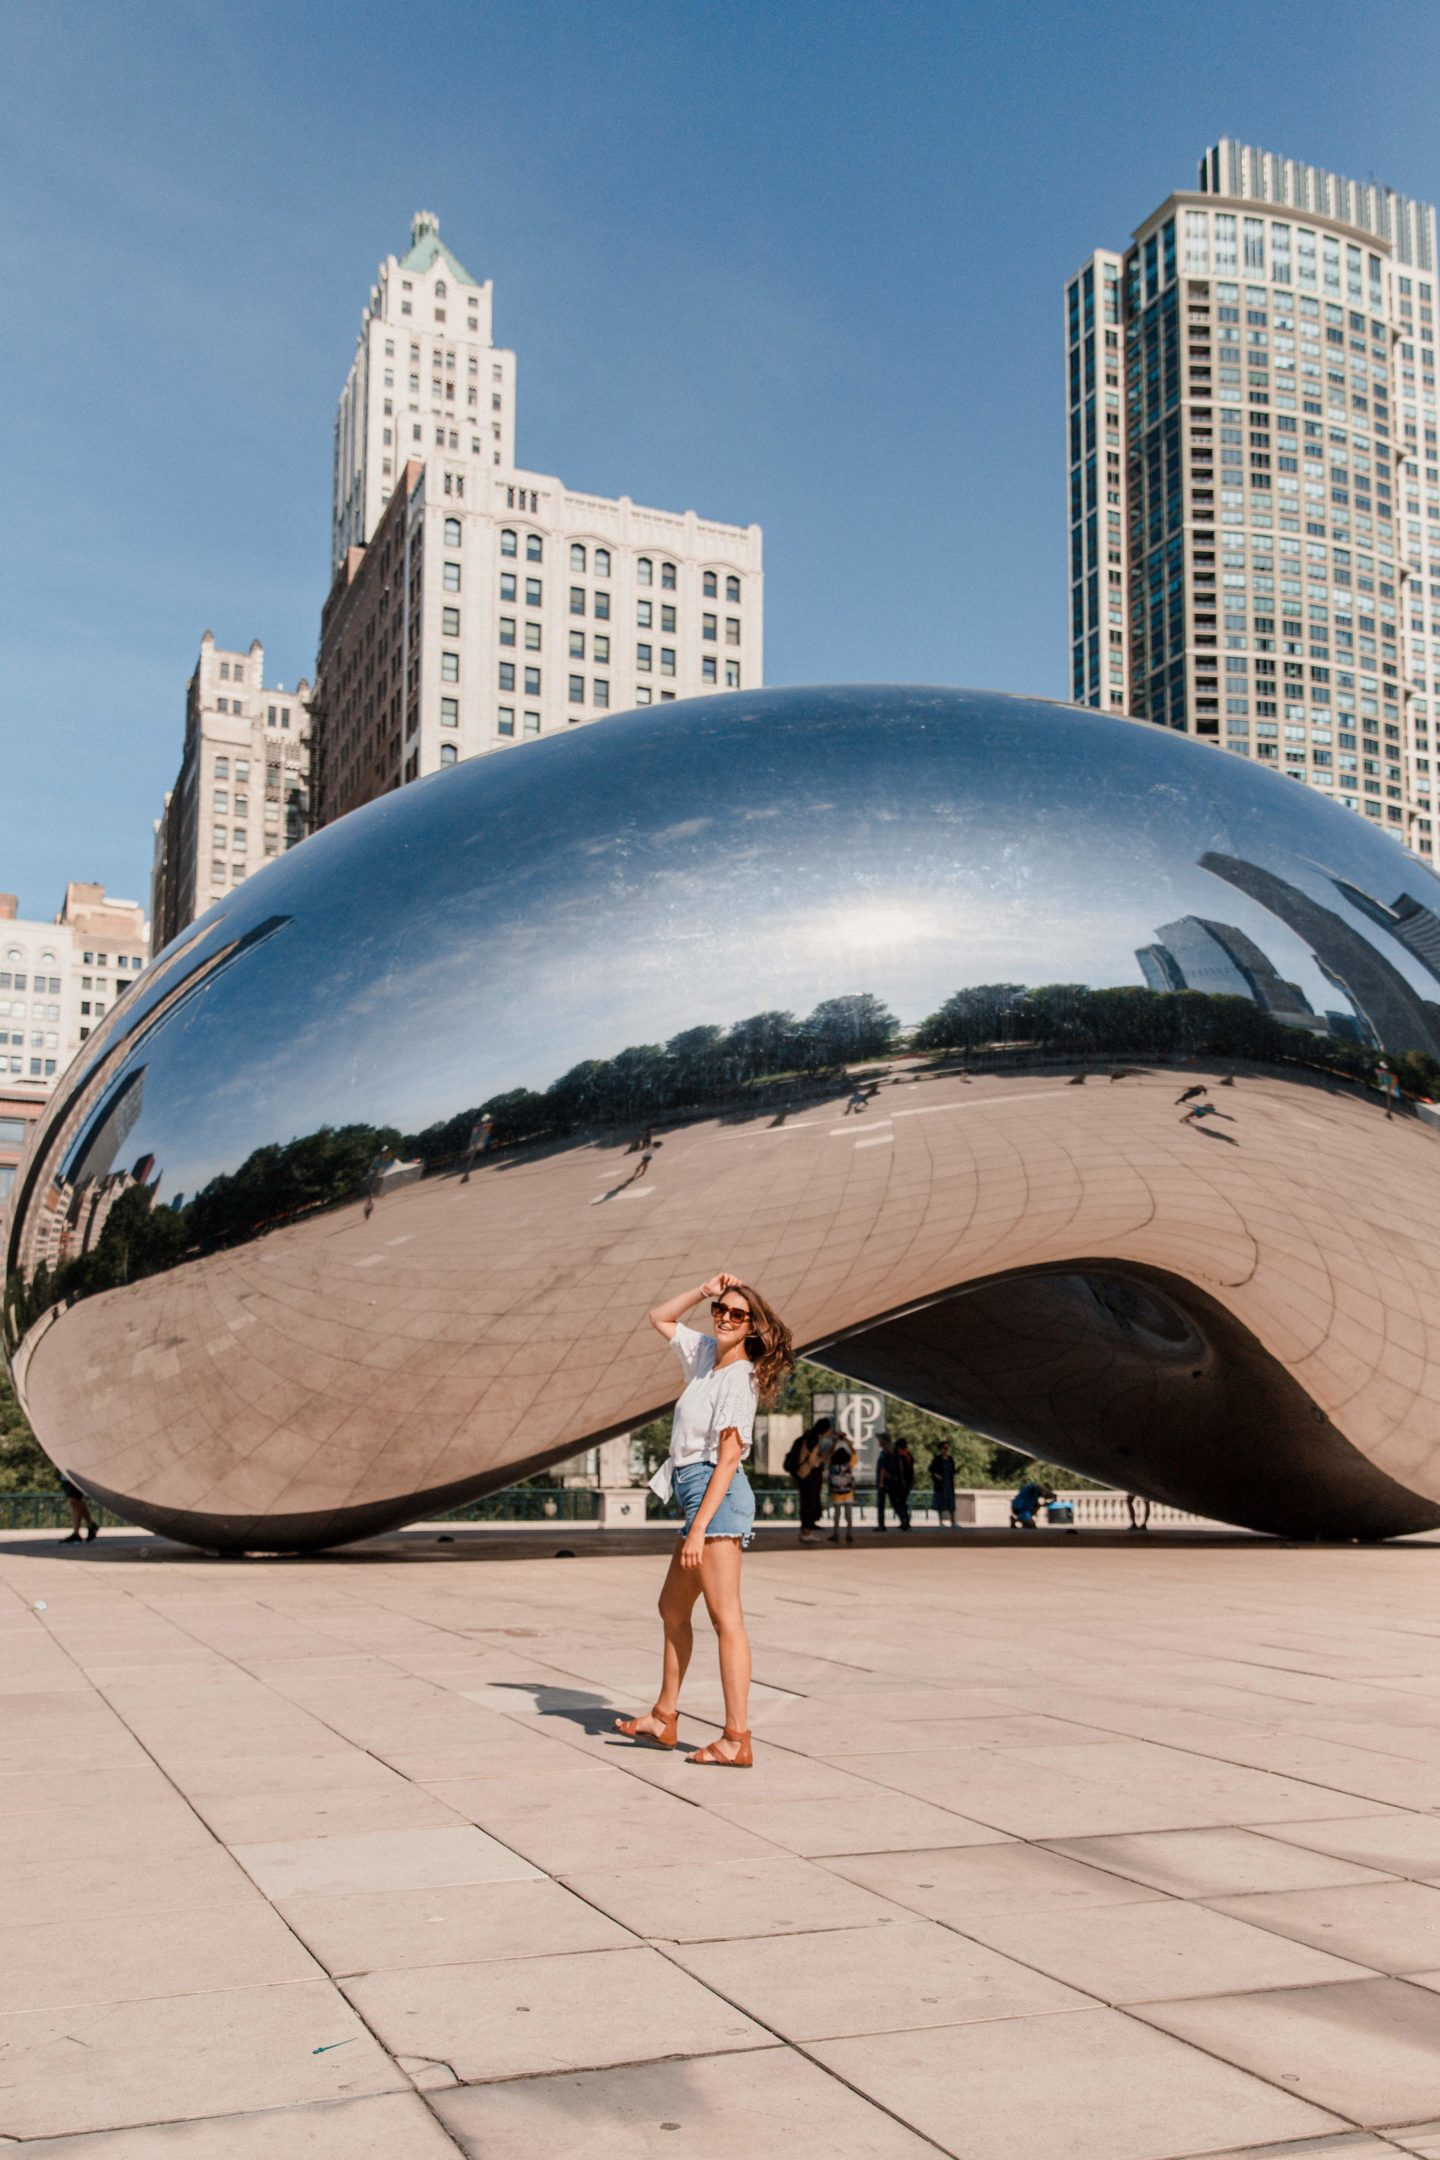 Chicago Travel Guide | What to Do: The Bean in Millennium Park